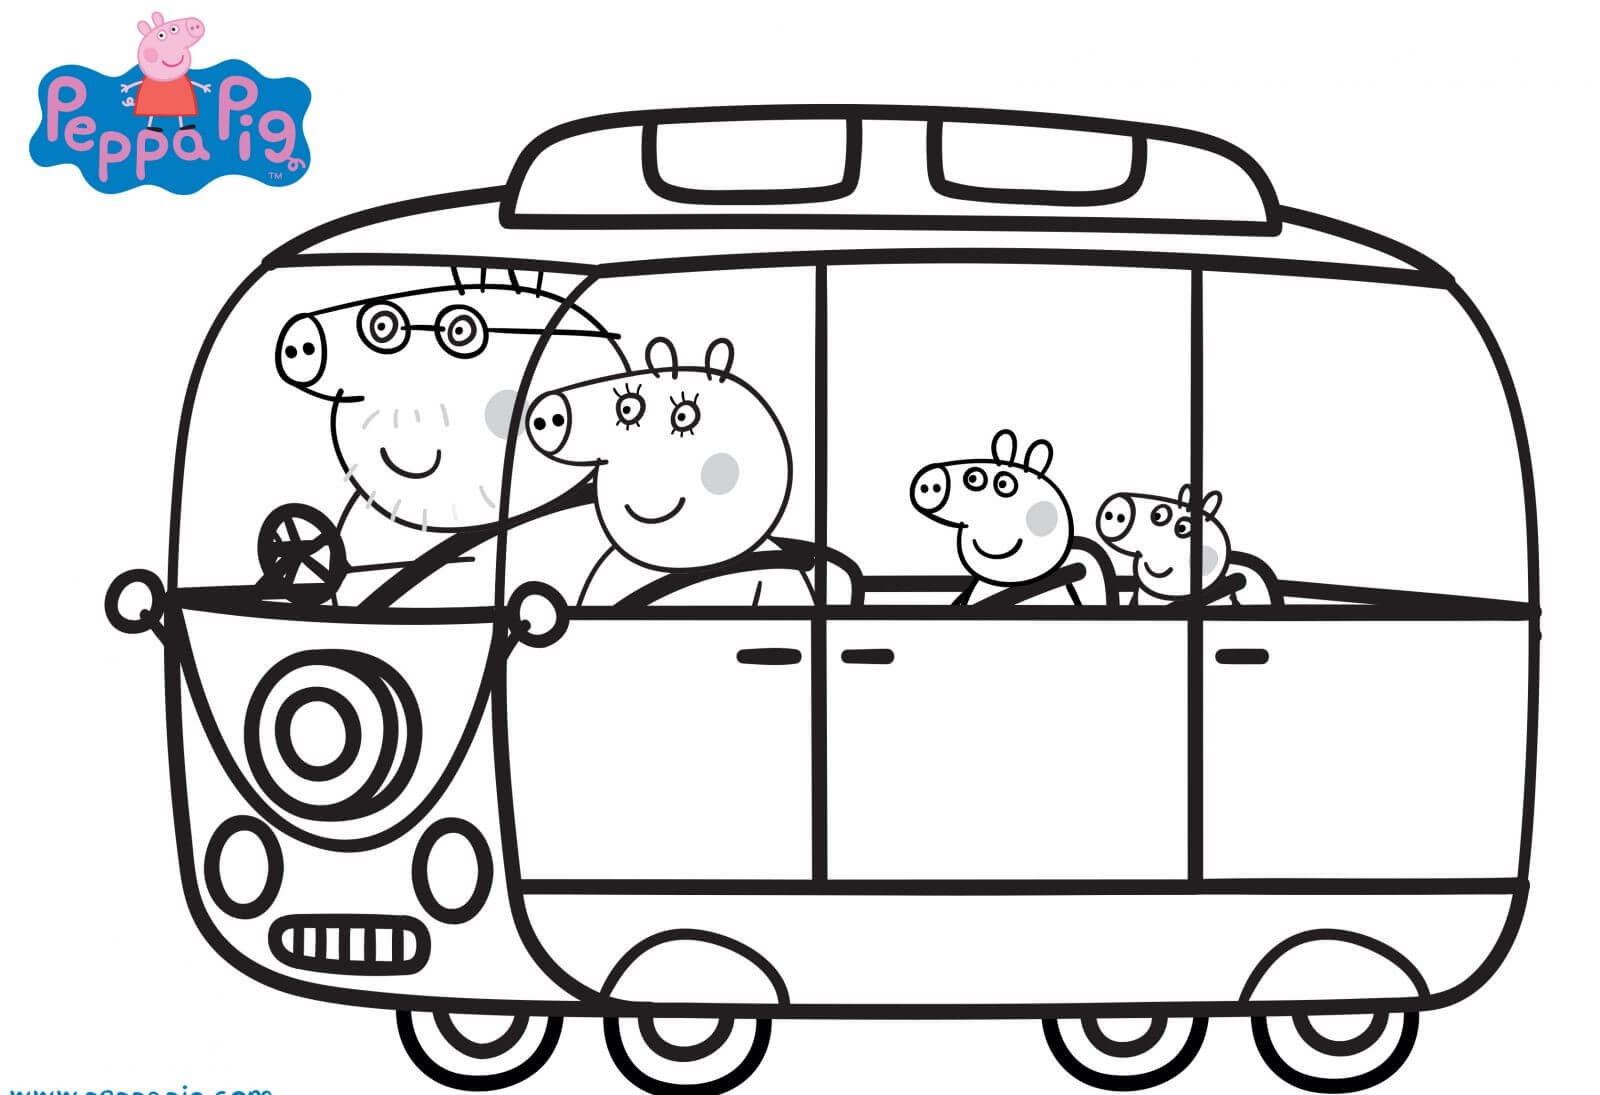 Peppa Pig Family Traveling Coloring Page